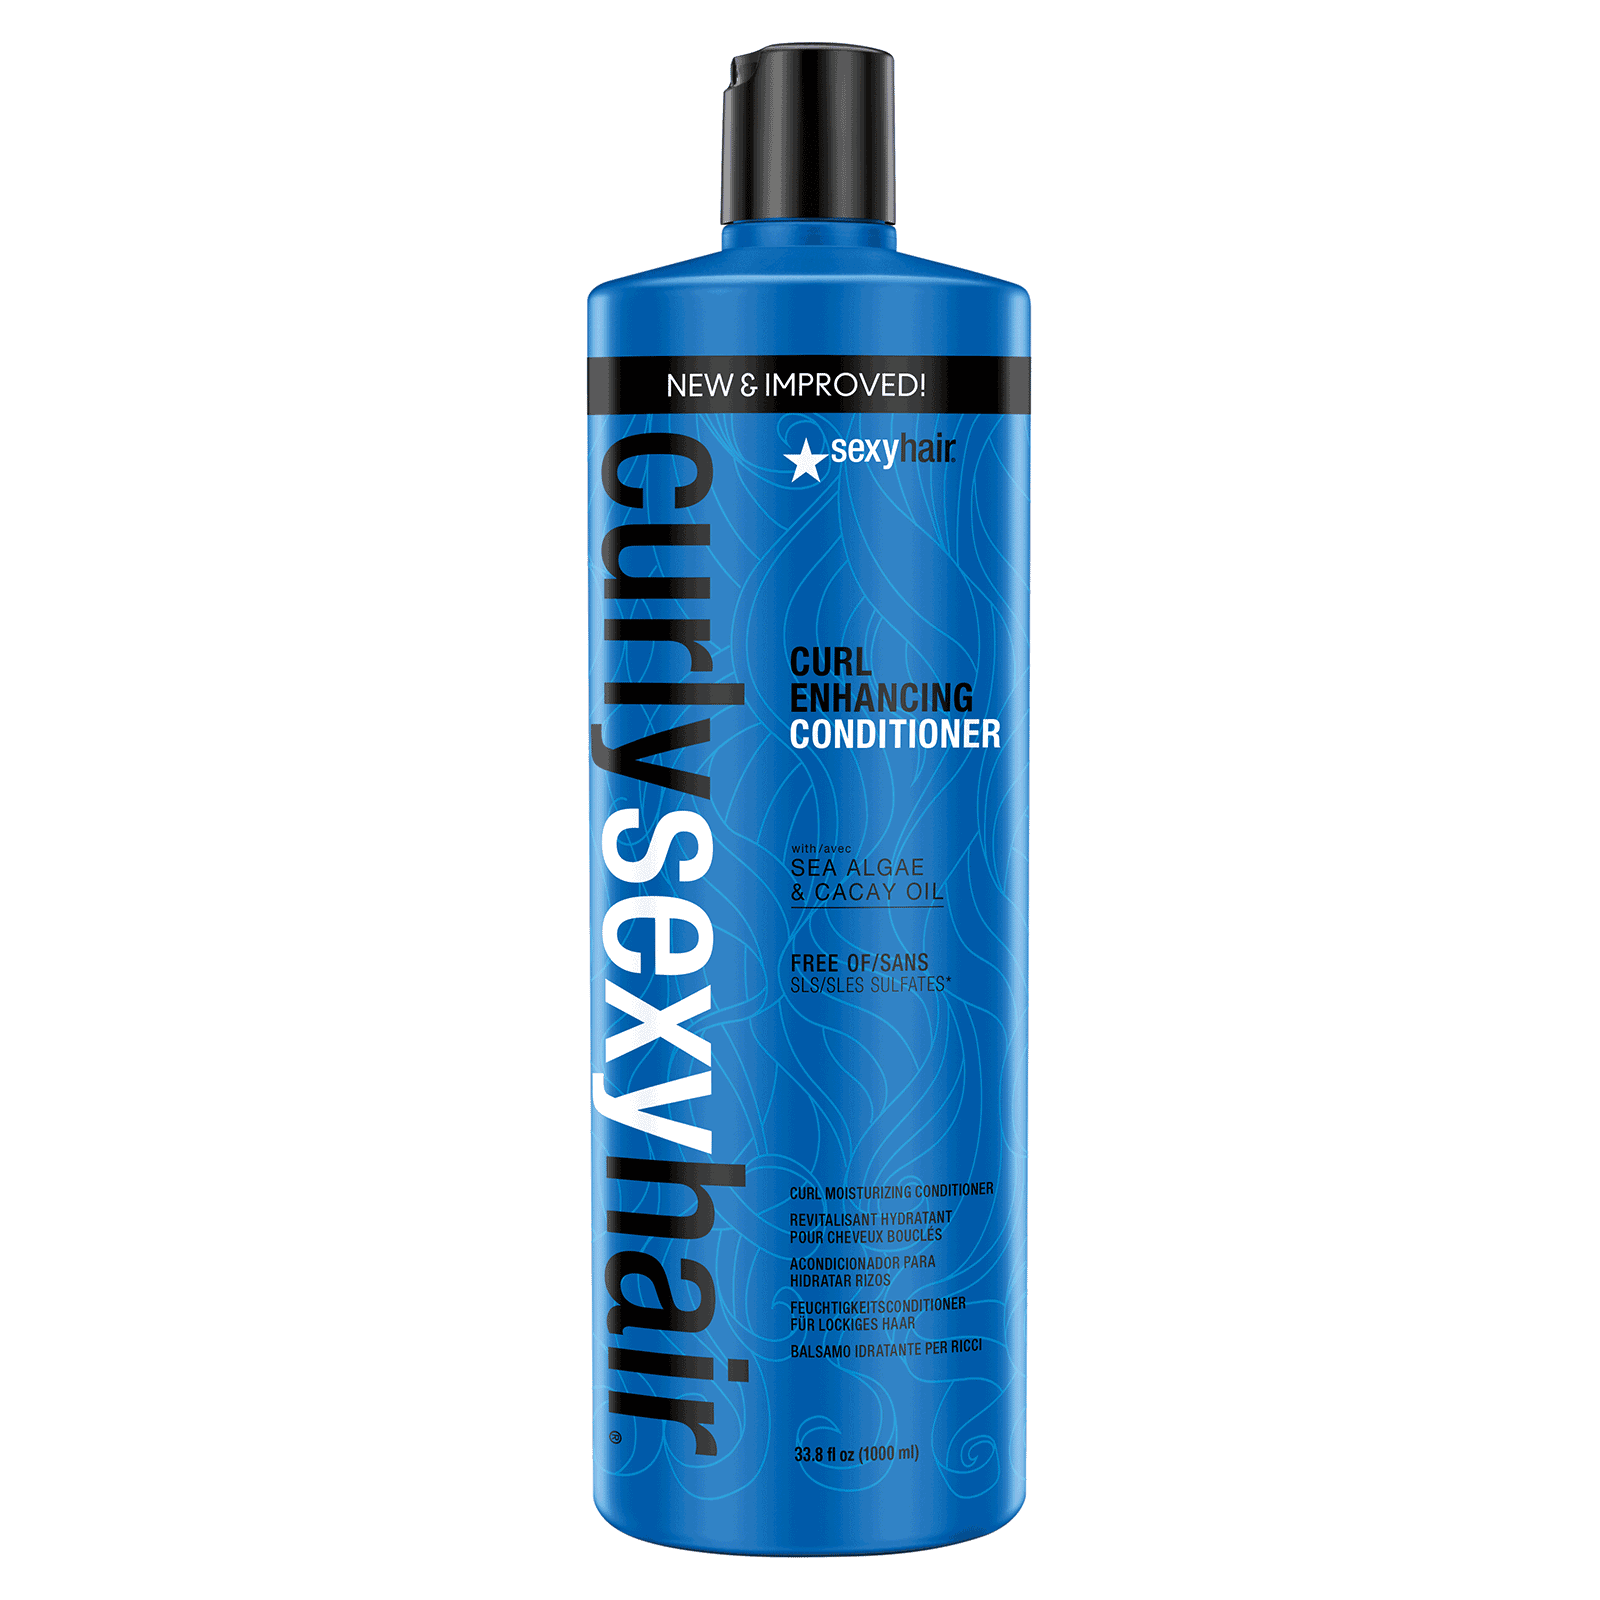 Curly Sexy Hair - Curl Enhancing Conditioner